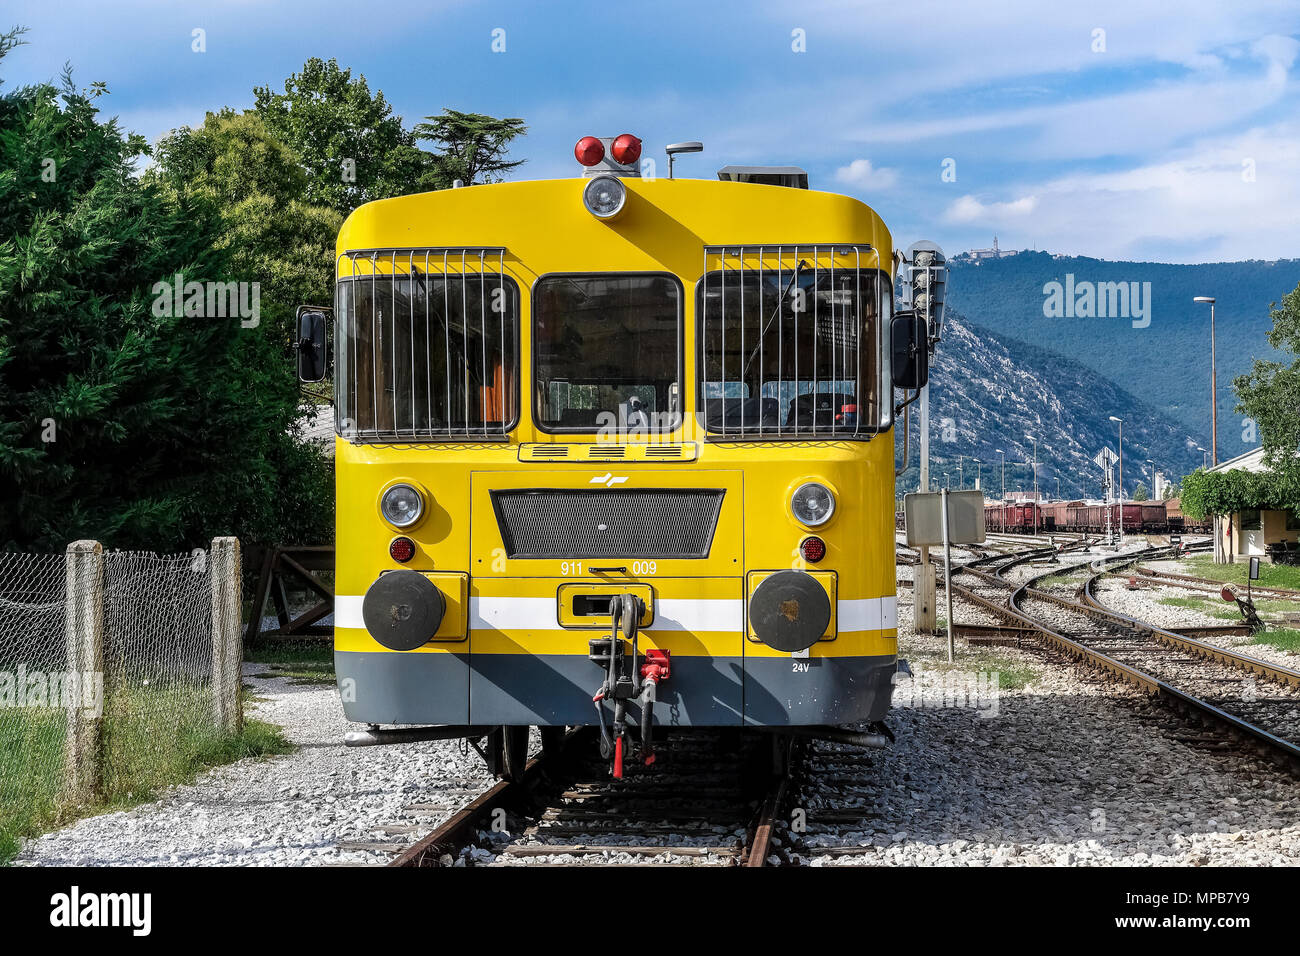 Railway construction machinery, yellow catenary maintenance draisine standing on an open track, just outside Nova Gorica railway station, Slovenia, EU Stock Photo